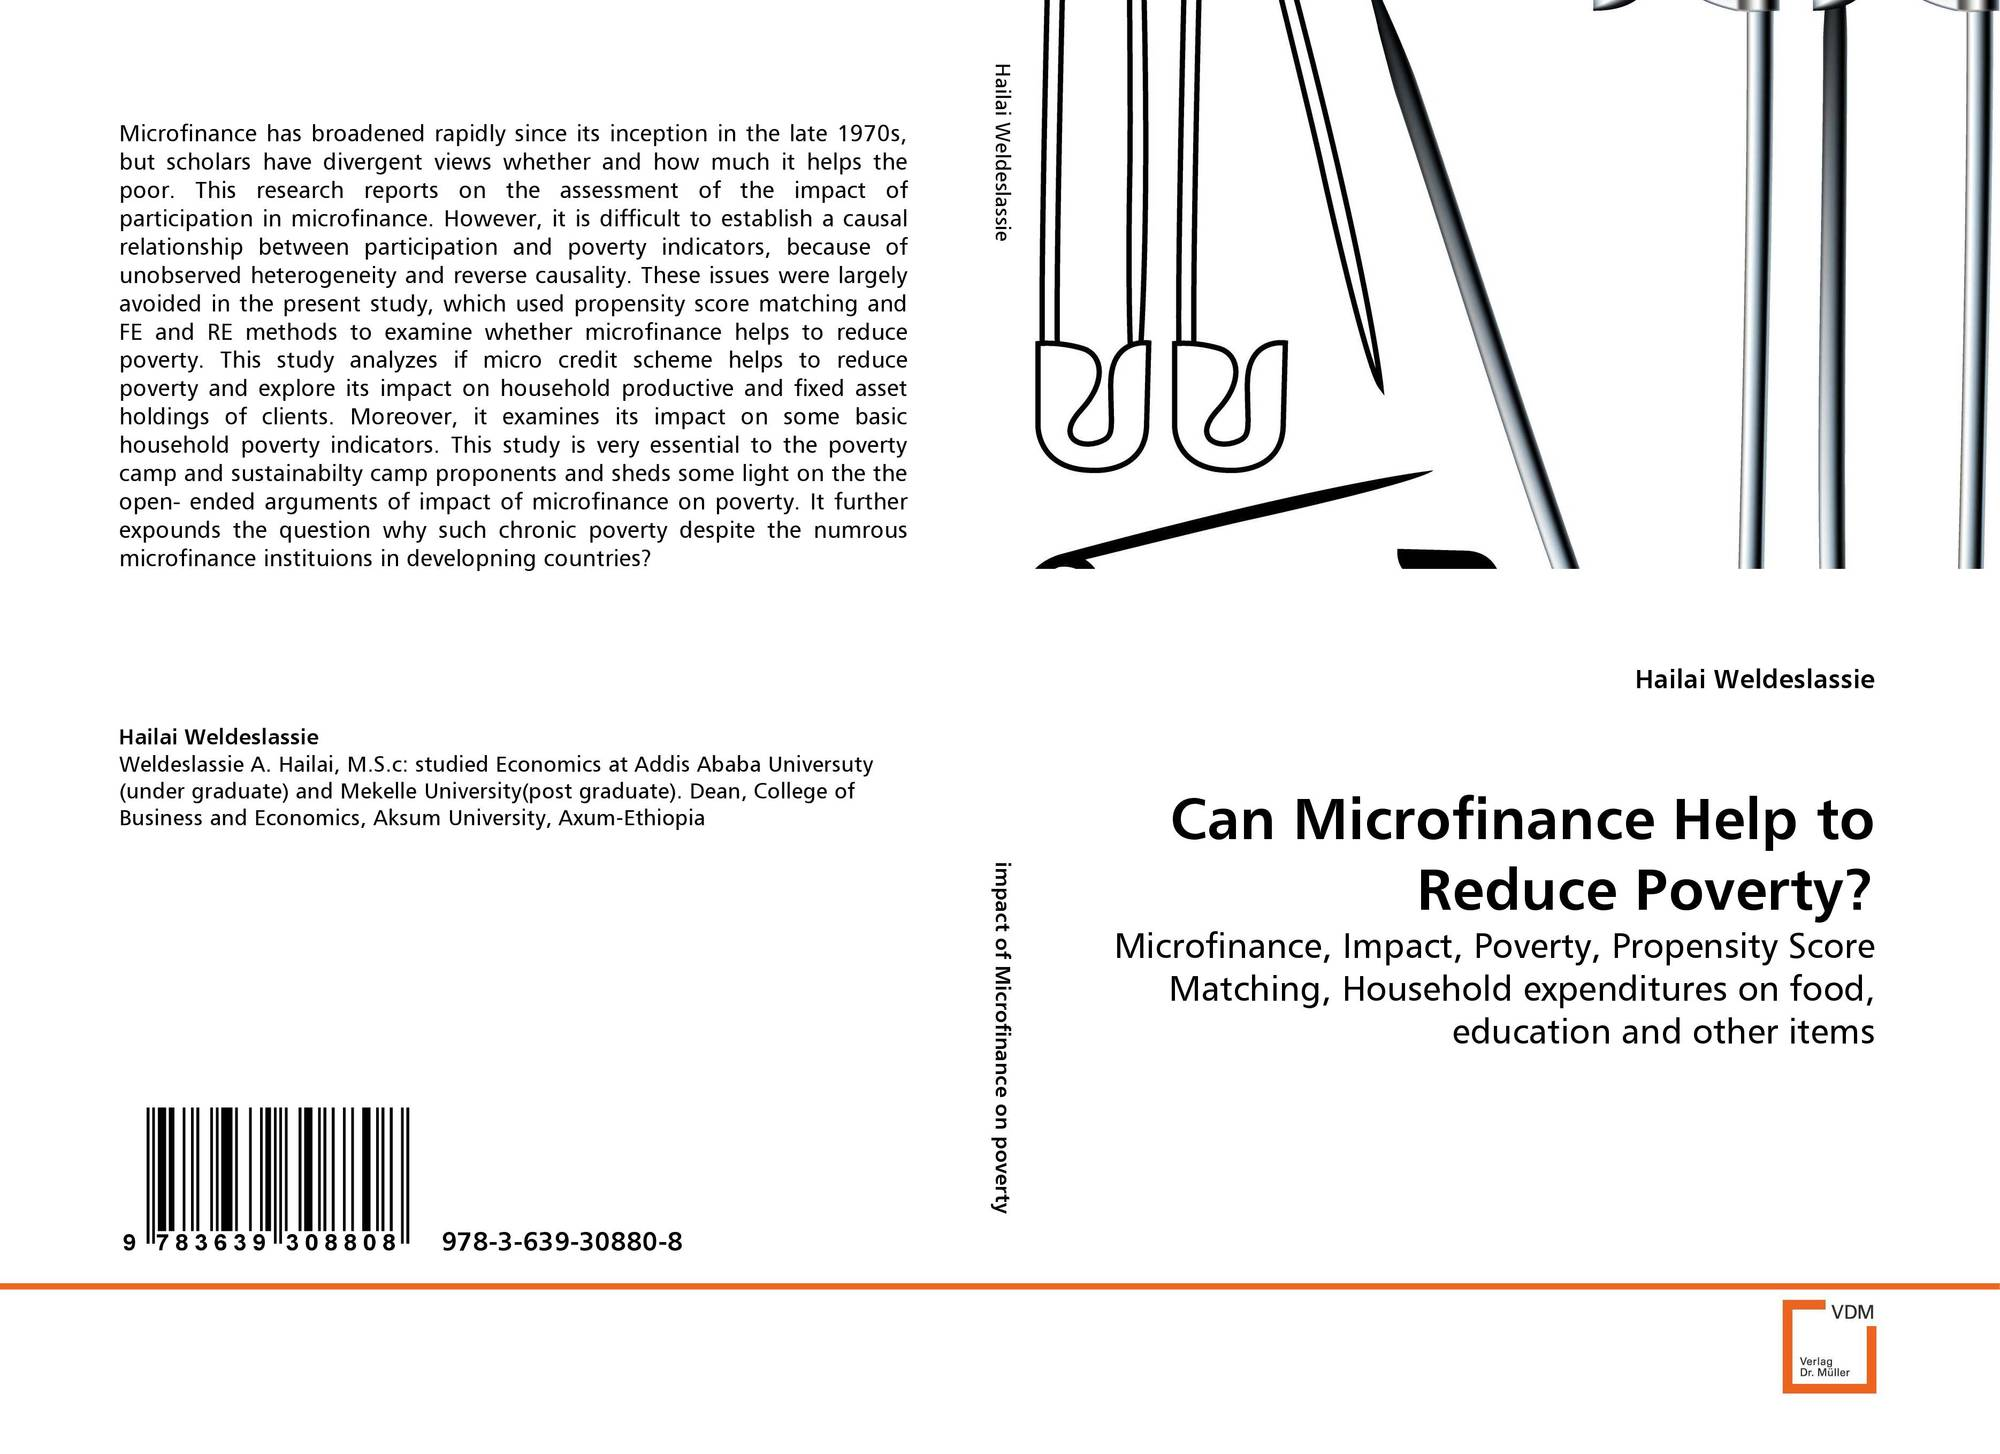 literature review on microfinance and poverty reduction Micro-credit and income: a literature review and meta of poverty by simply providing them with capital they may literature on microfinance is.